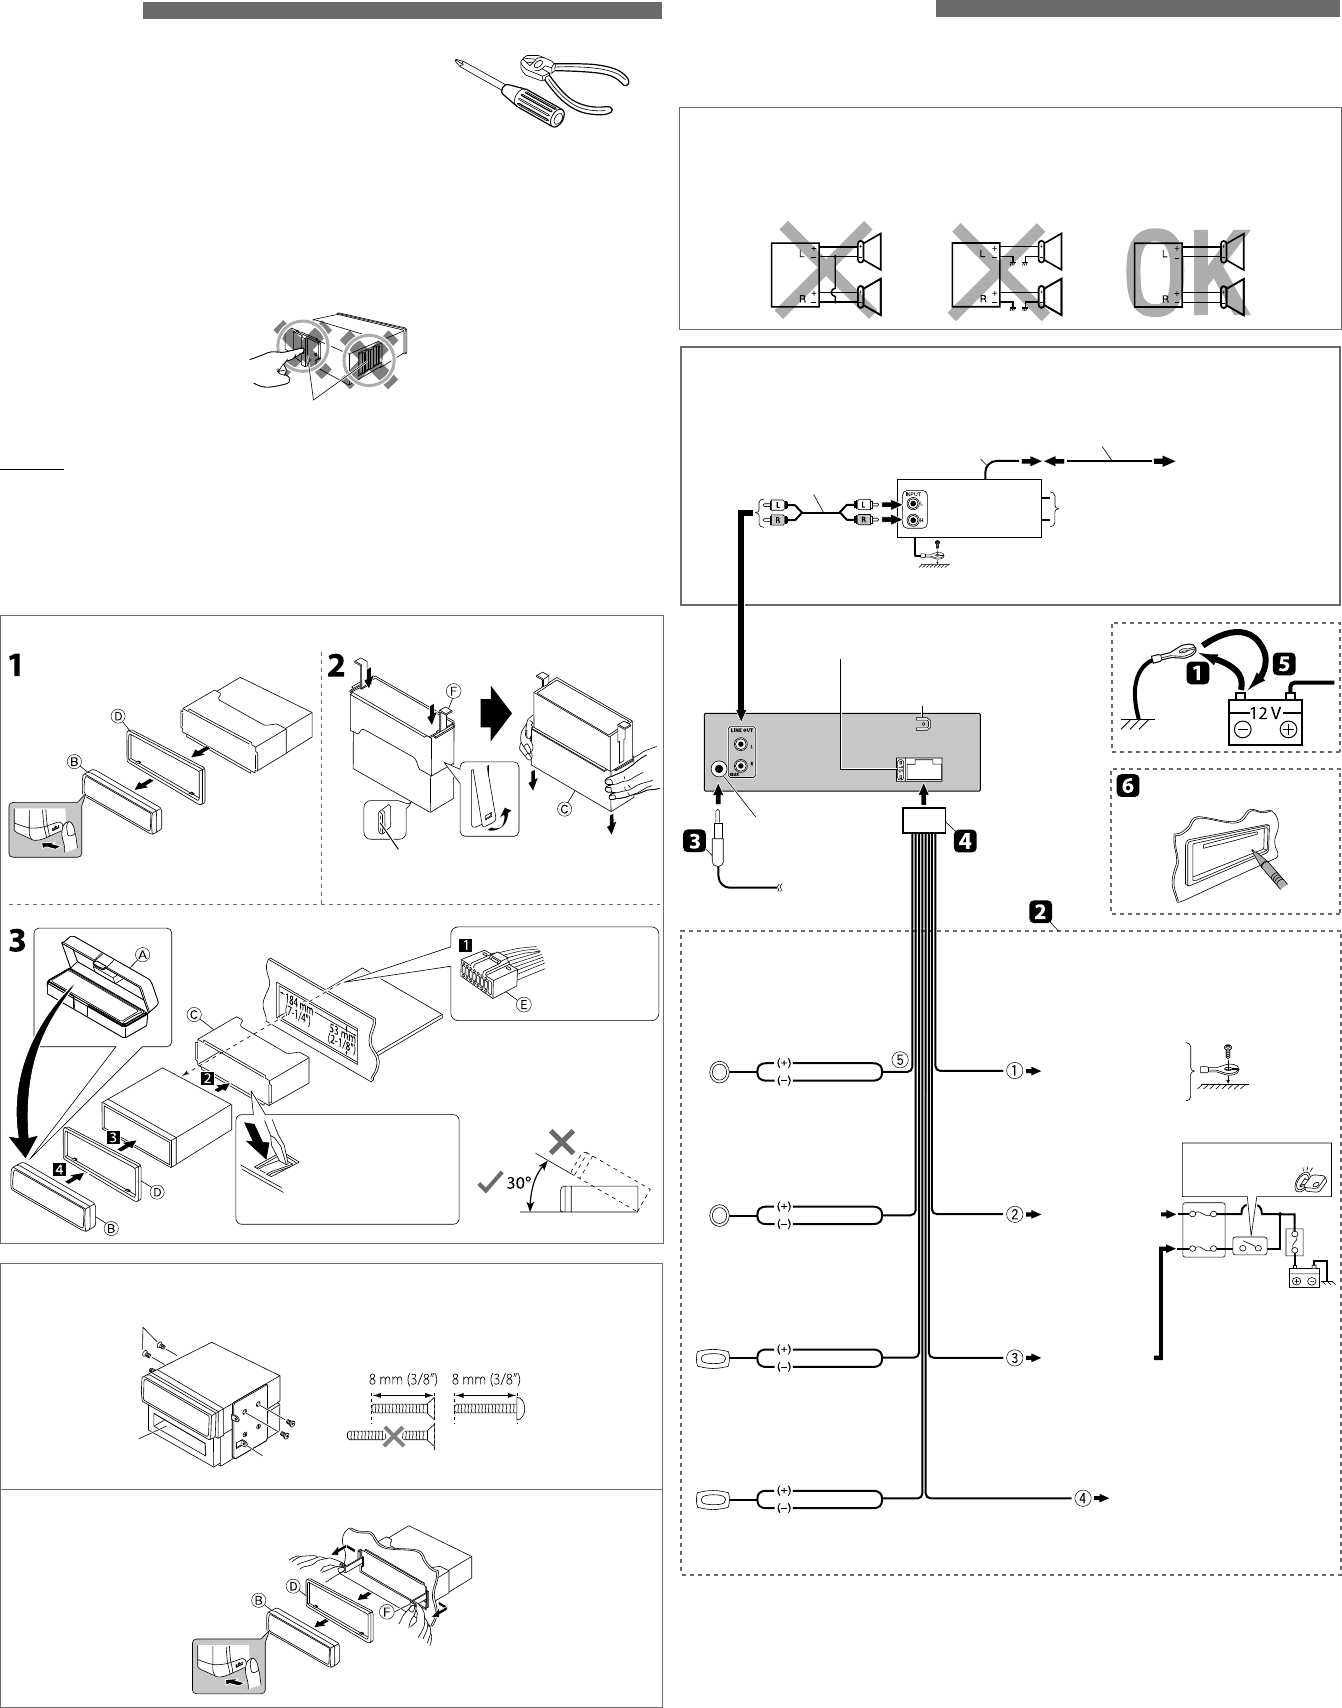 Auto Antenna Wiring Diagram as well Msr126t Wiring Diagram additionally Showthread besides Jvc Kd R370 Wiring Diagram also Charge Line Car Trailer 84789. on firestik wiring diagram